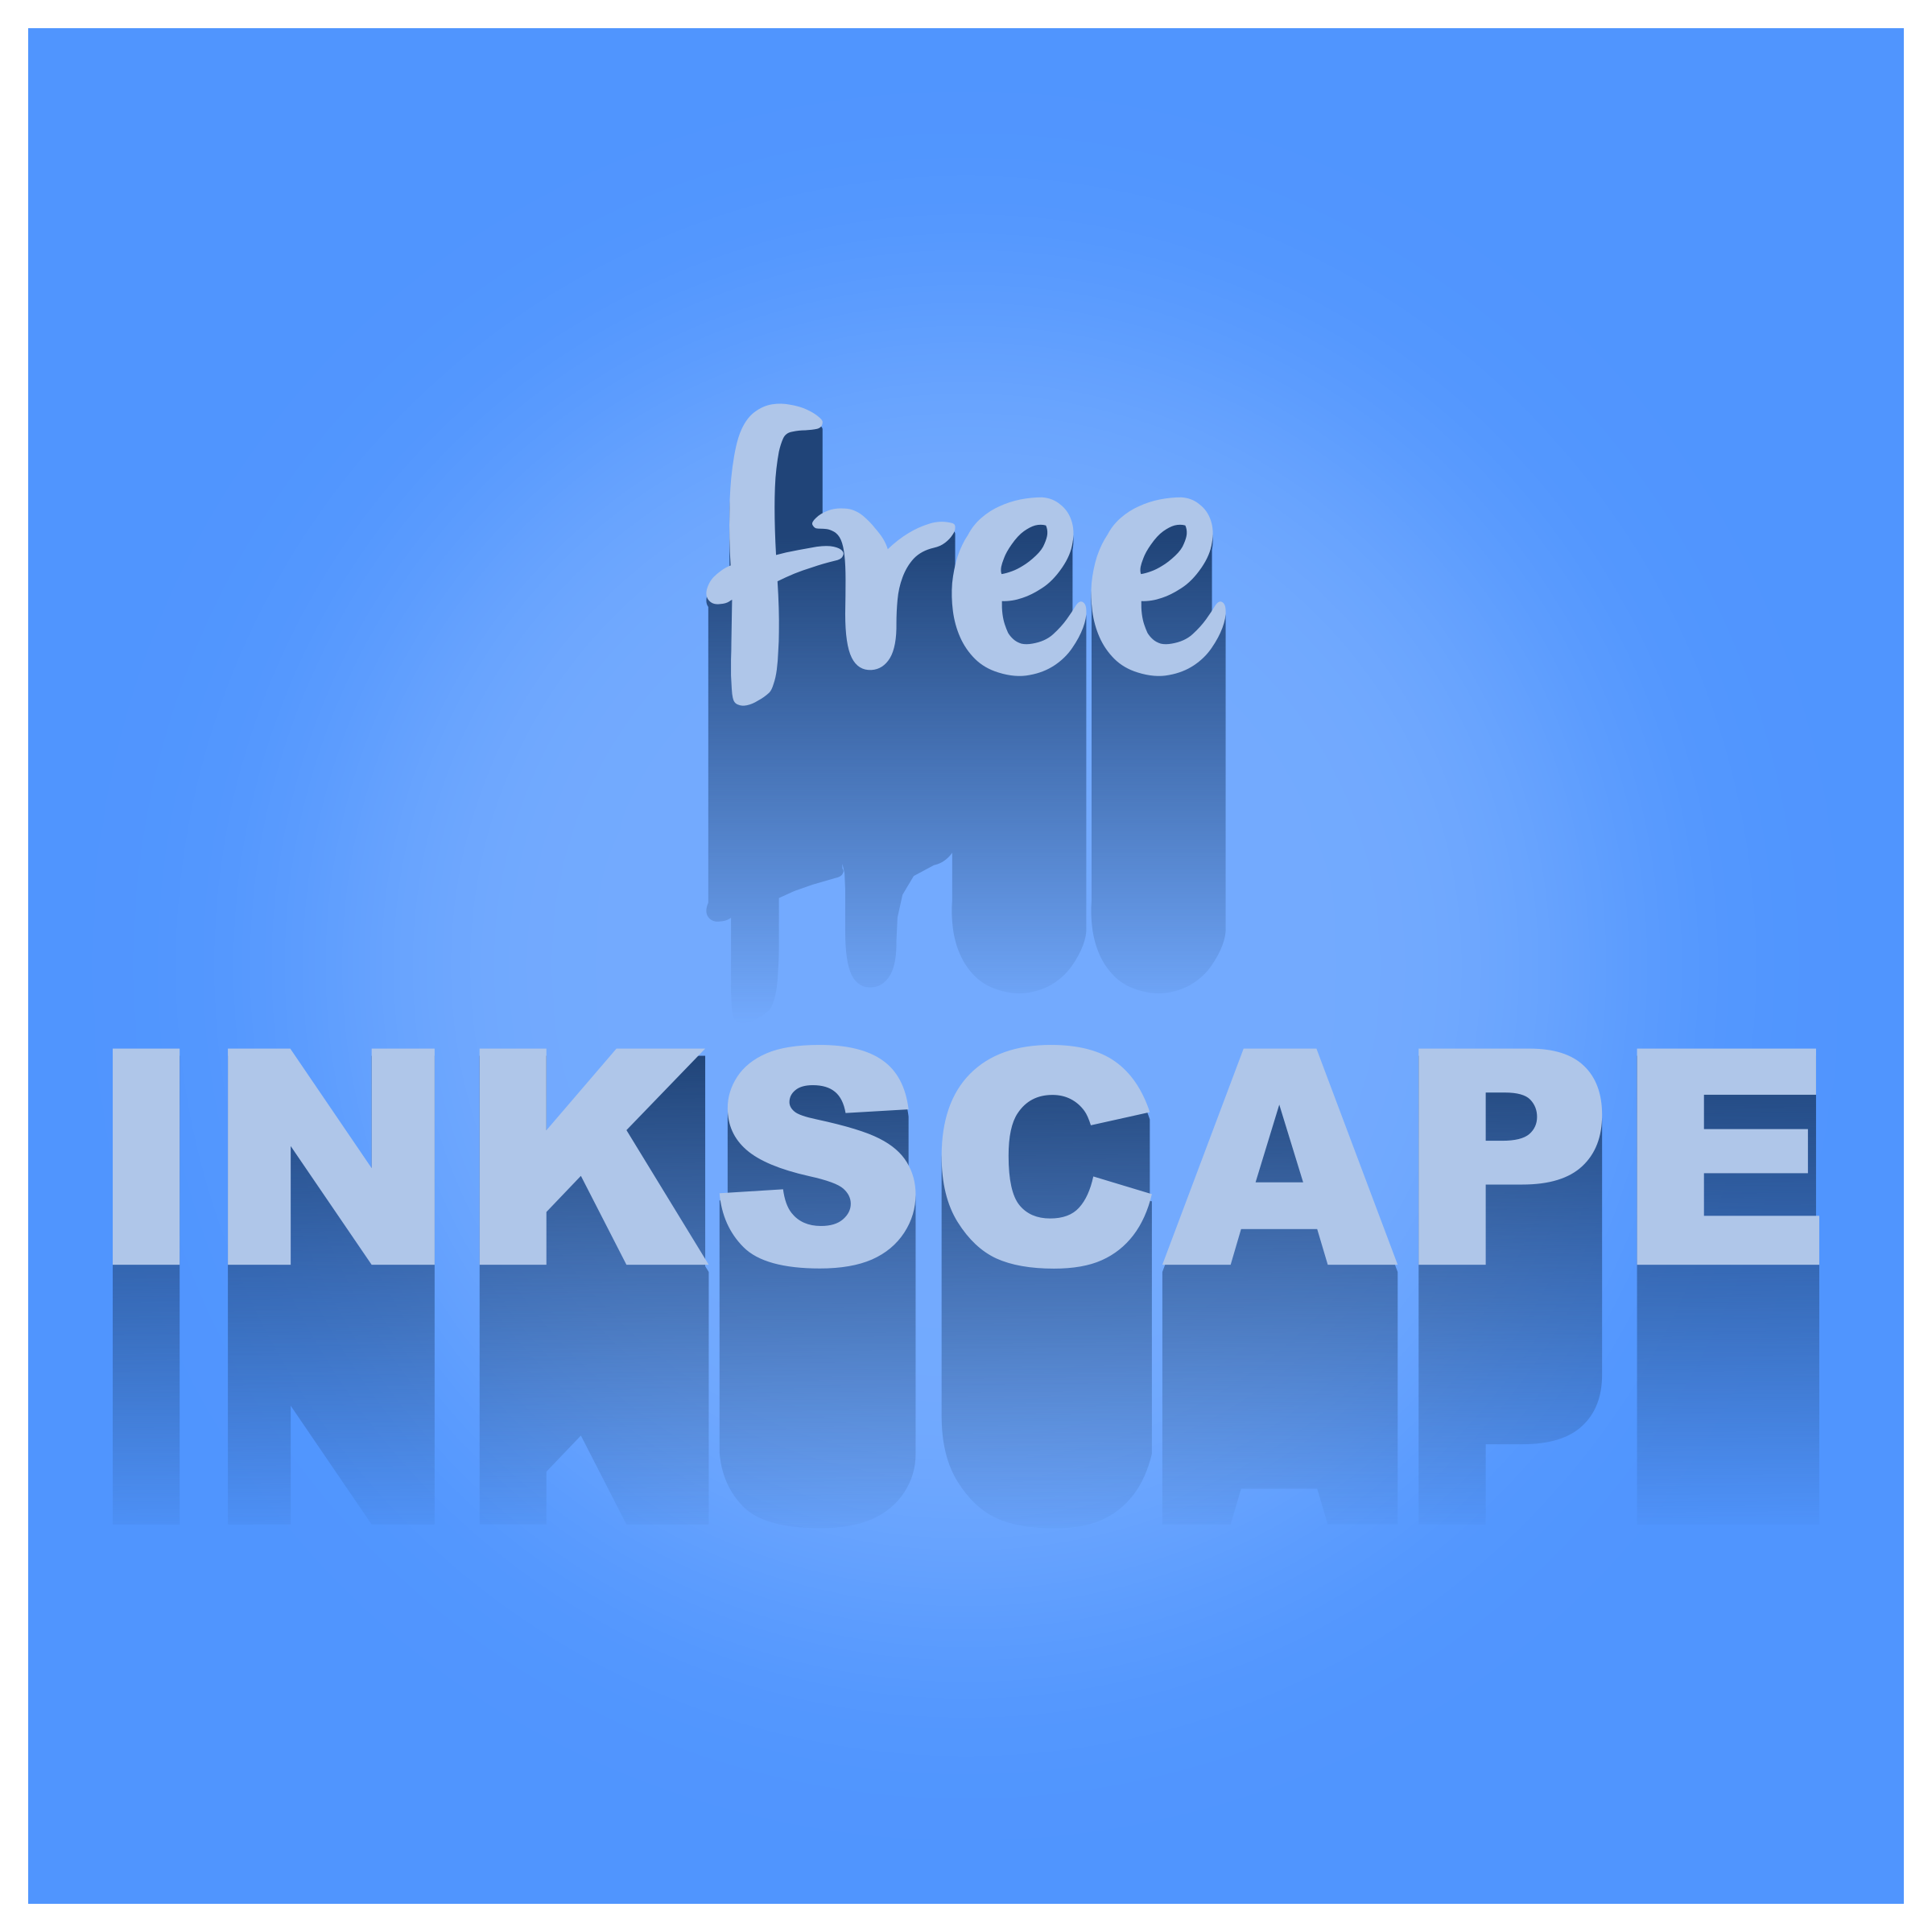 Free Inkscape #3 by Almeidah